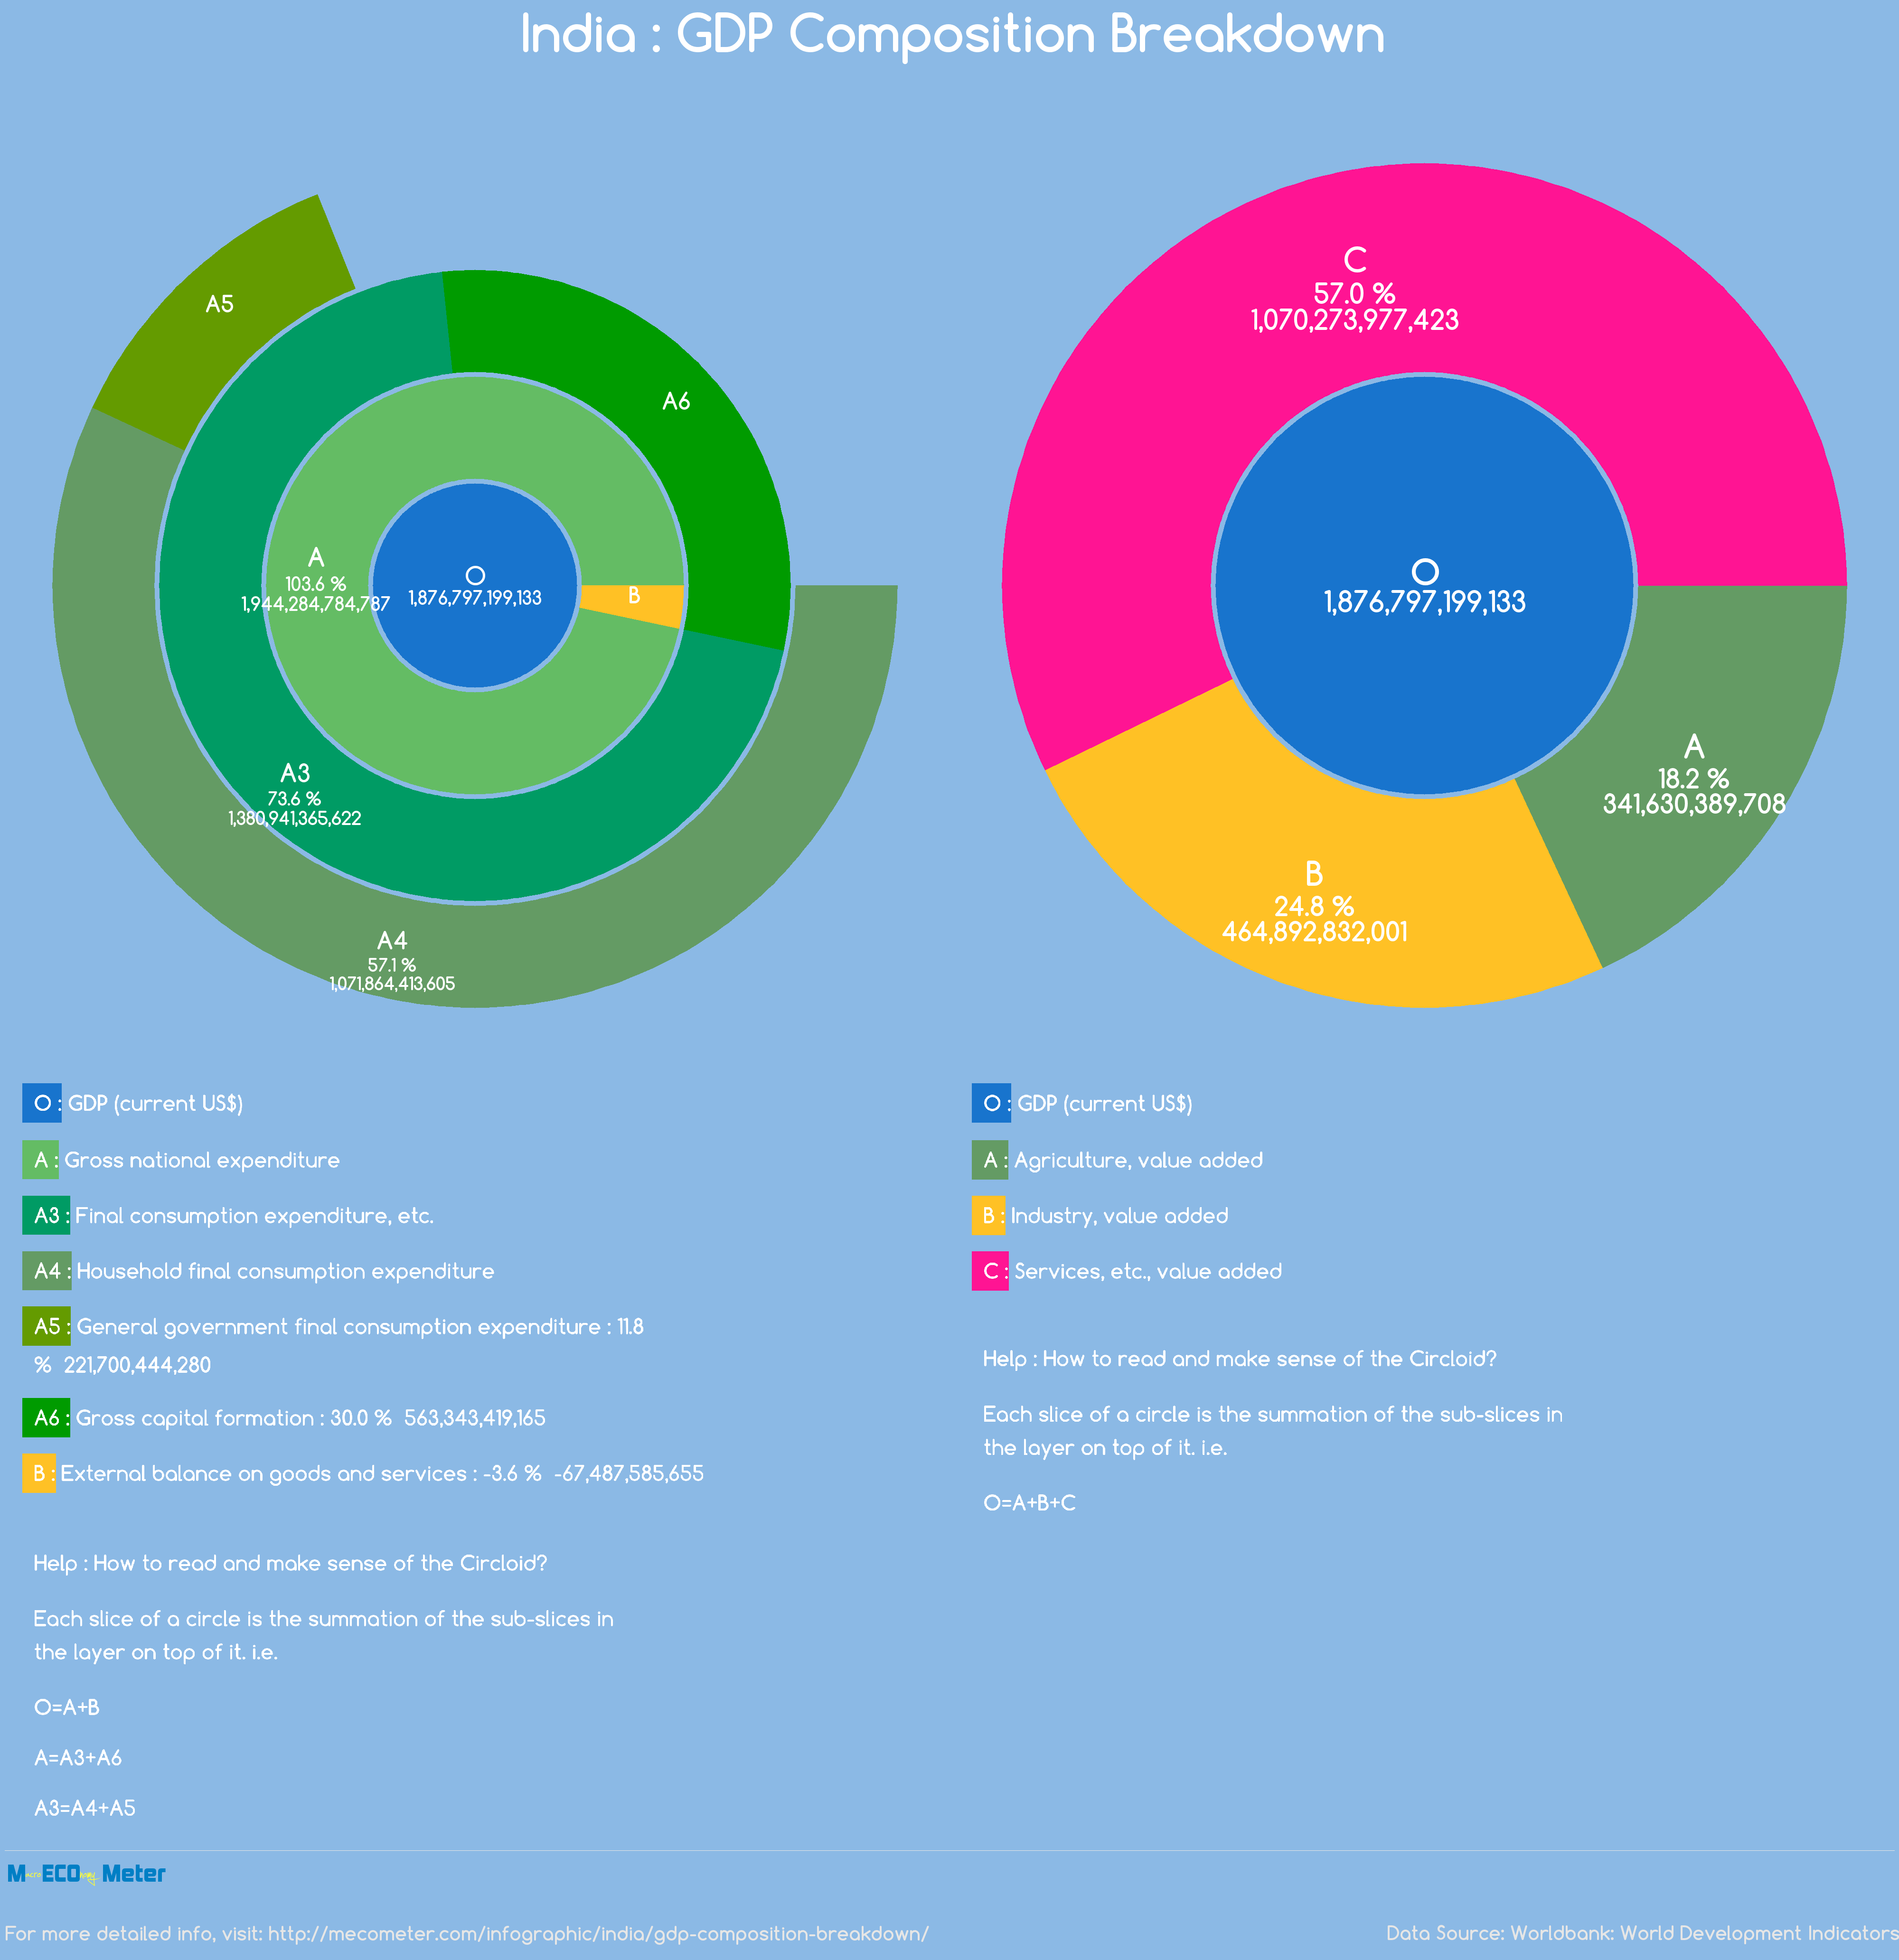 India : GDP Composition Breakdown